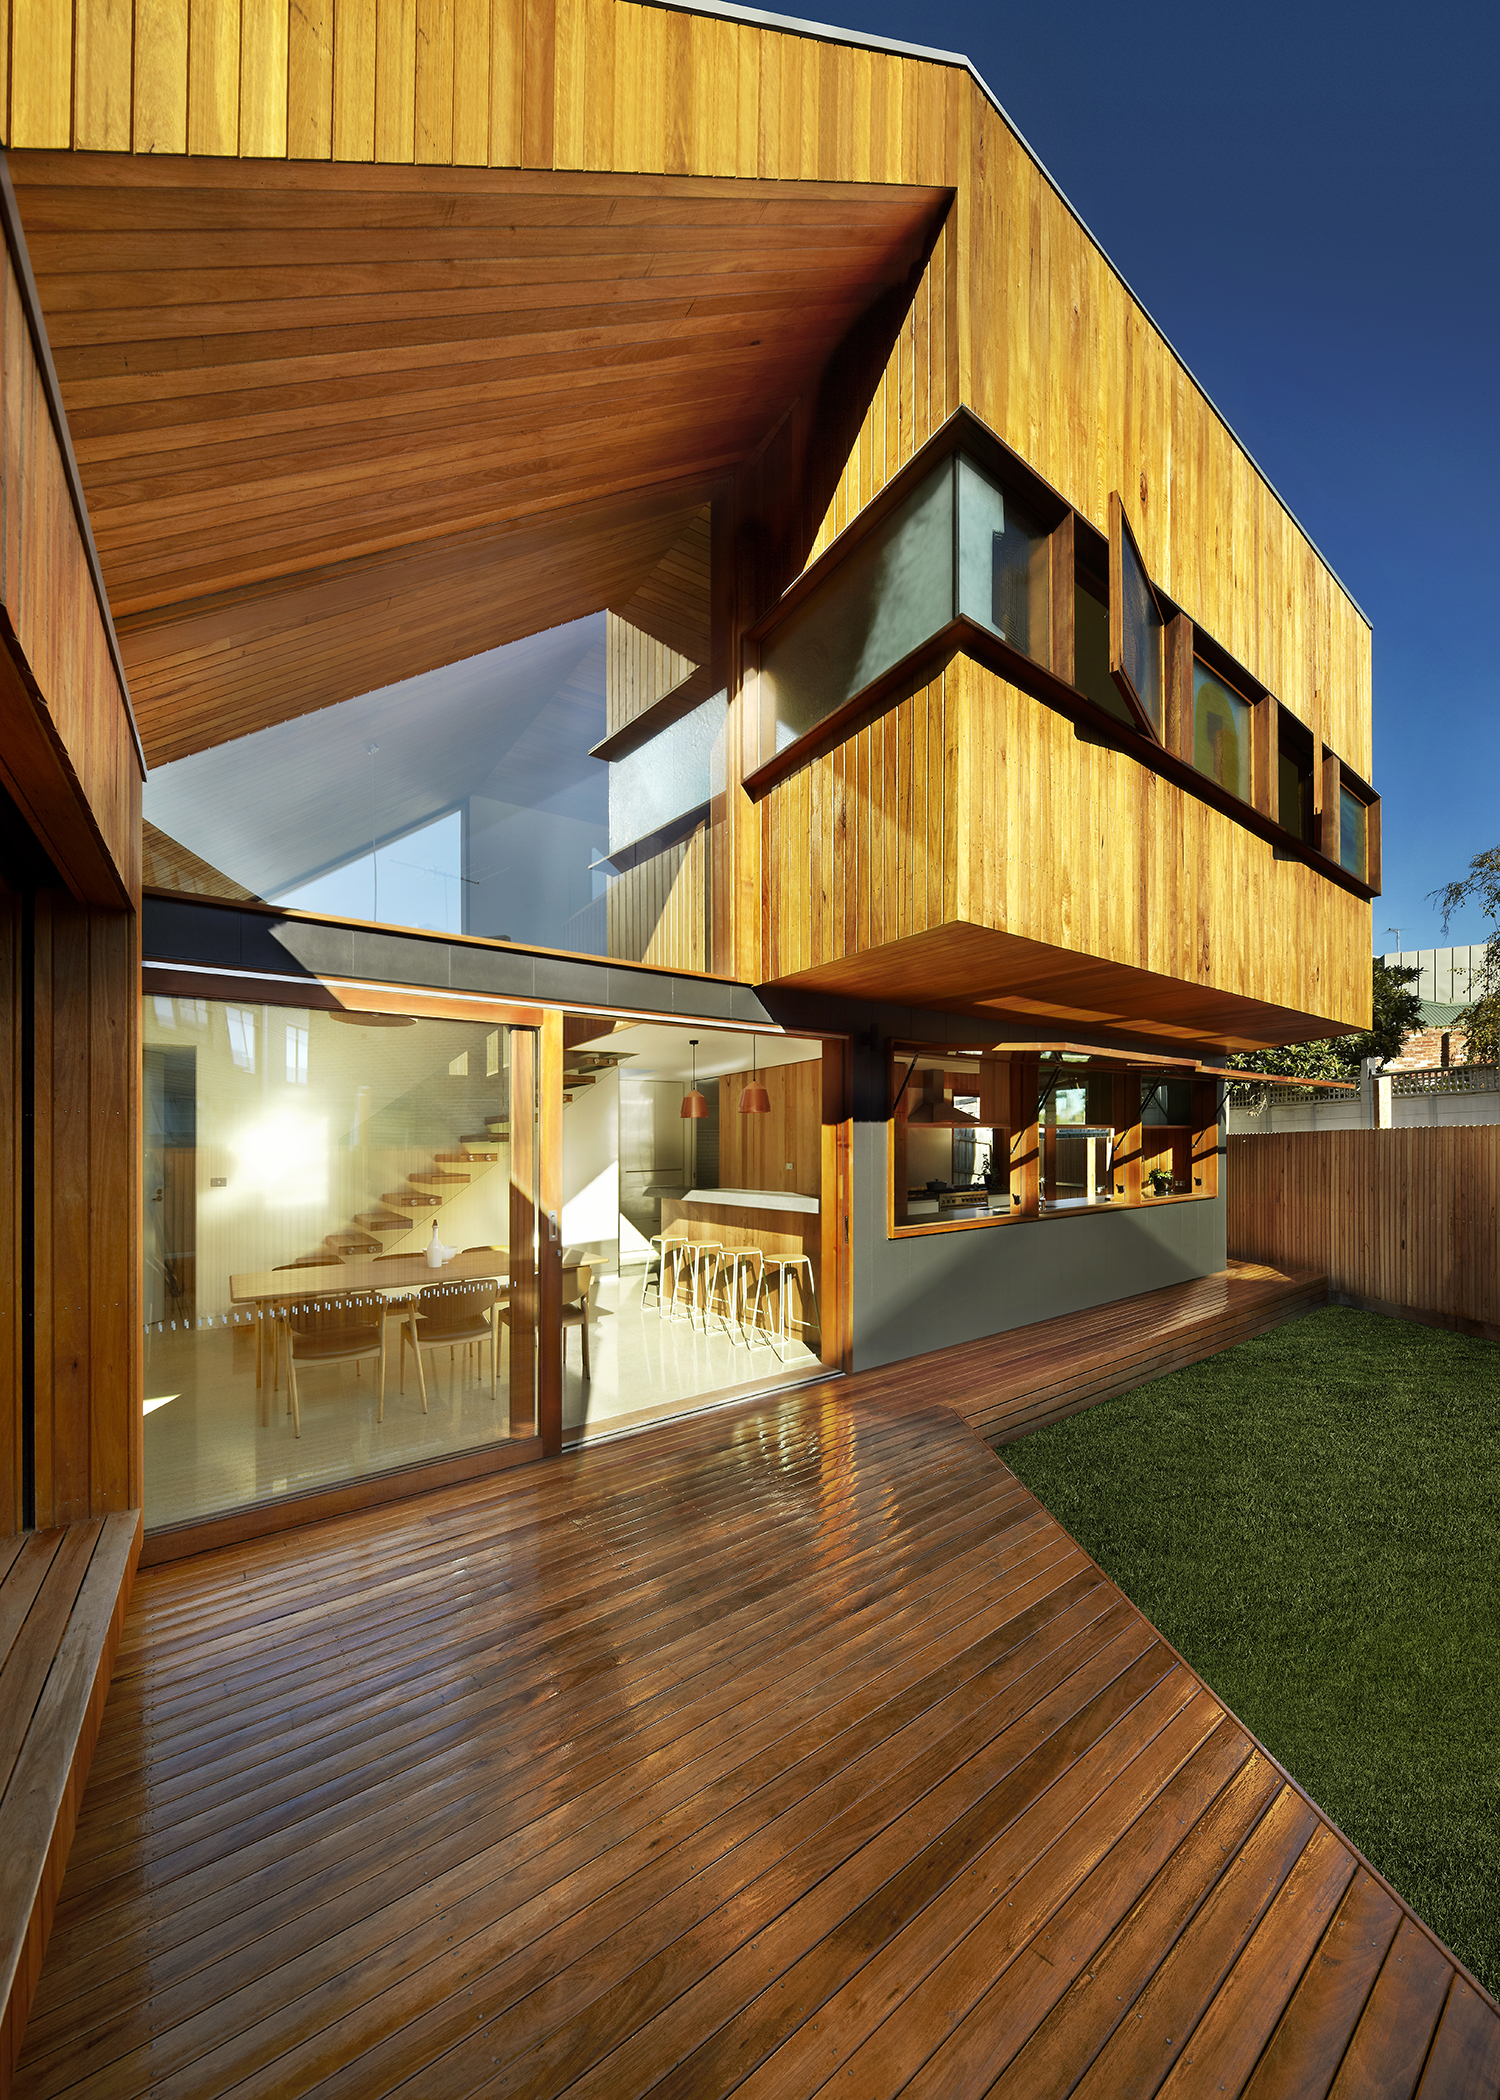 Timber clad house with double height living space and north facing deck